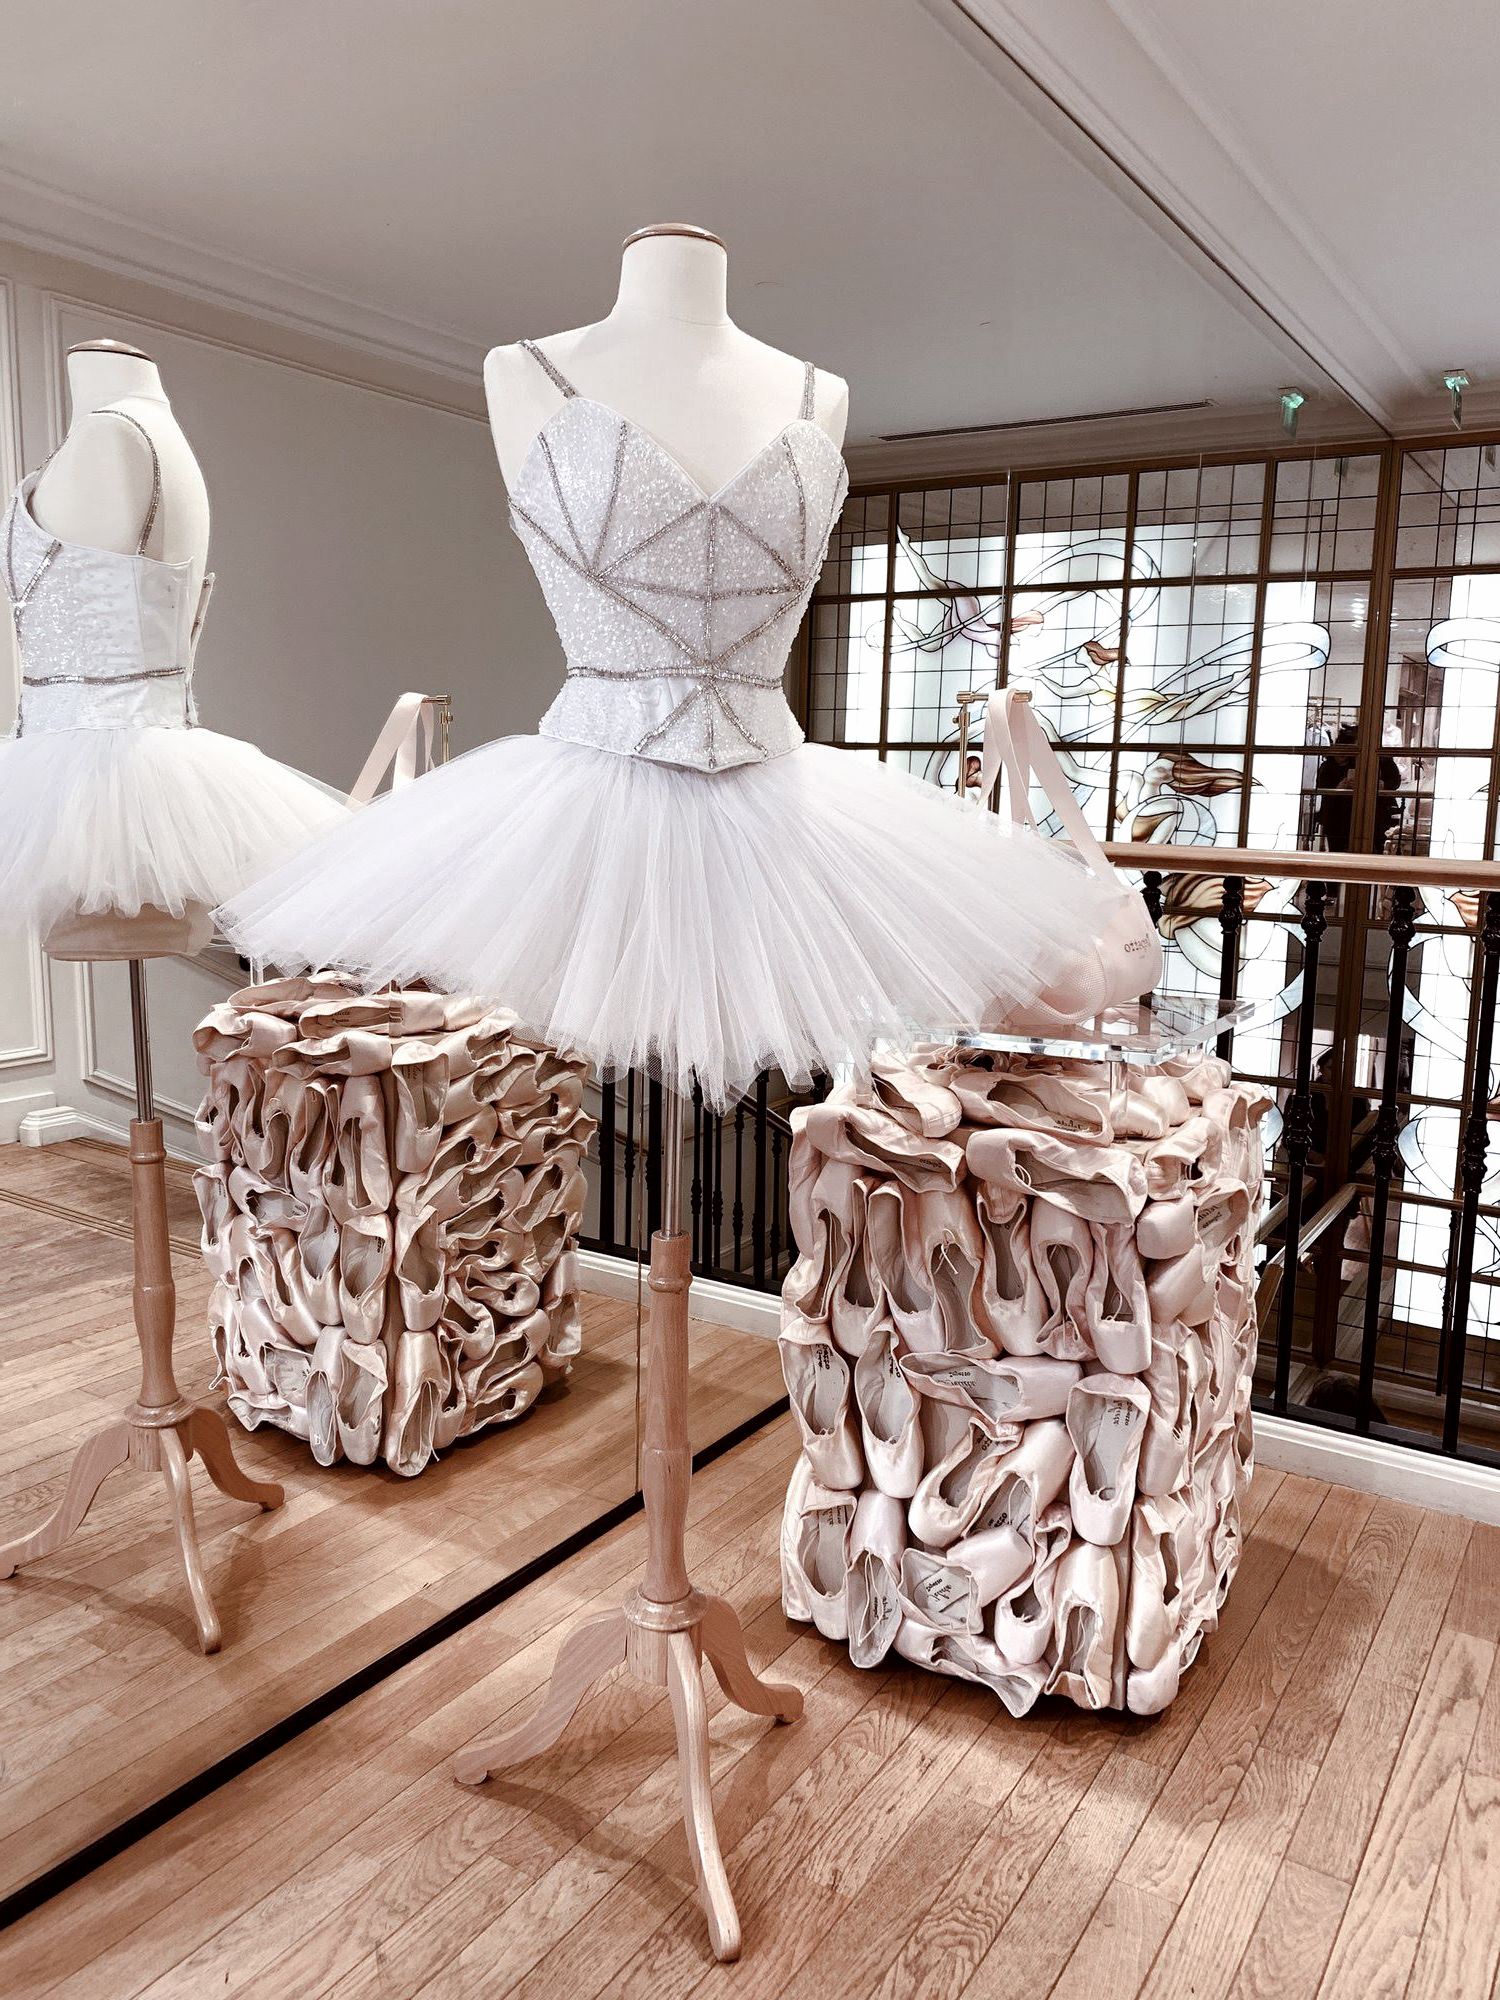 Heavy as a stone or light as a feather: I love the gravity of the blocks of battered slippers juxtaposed with the ethereal tutu. #2019dogwood52 #dogwood52 #dogwoodweek18